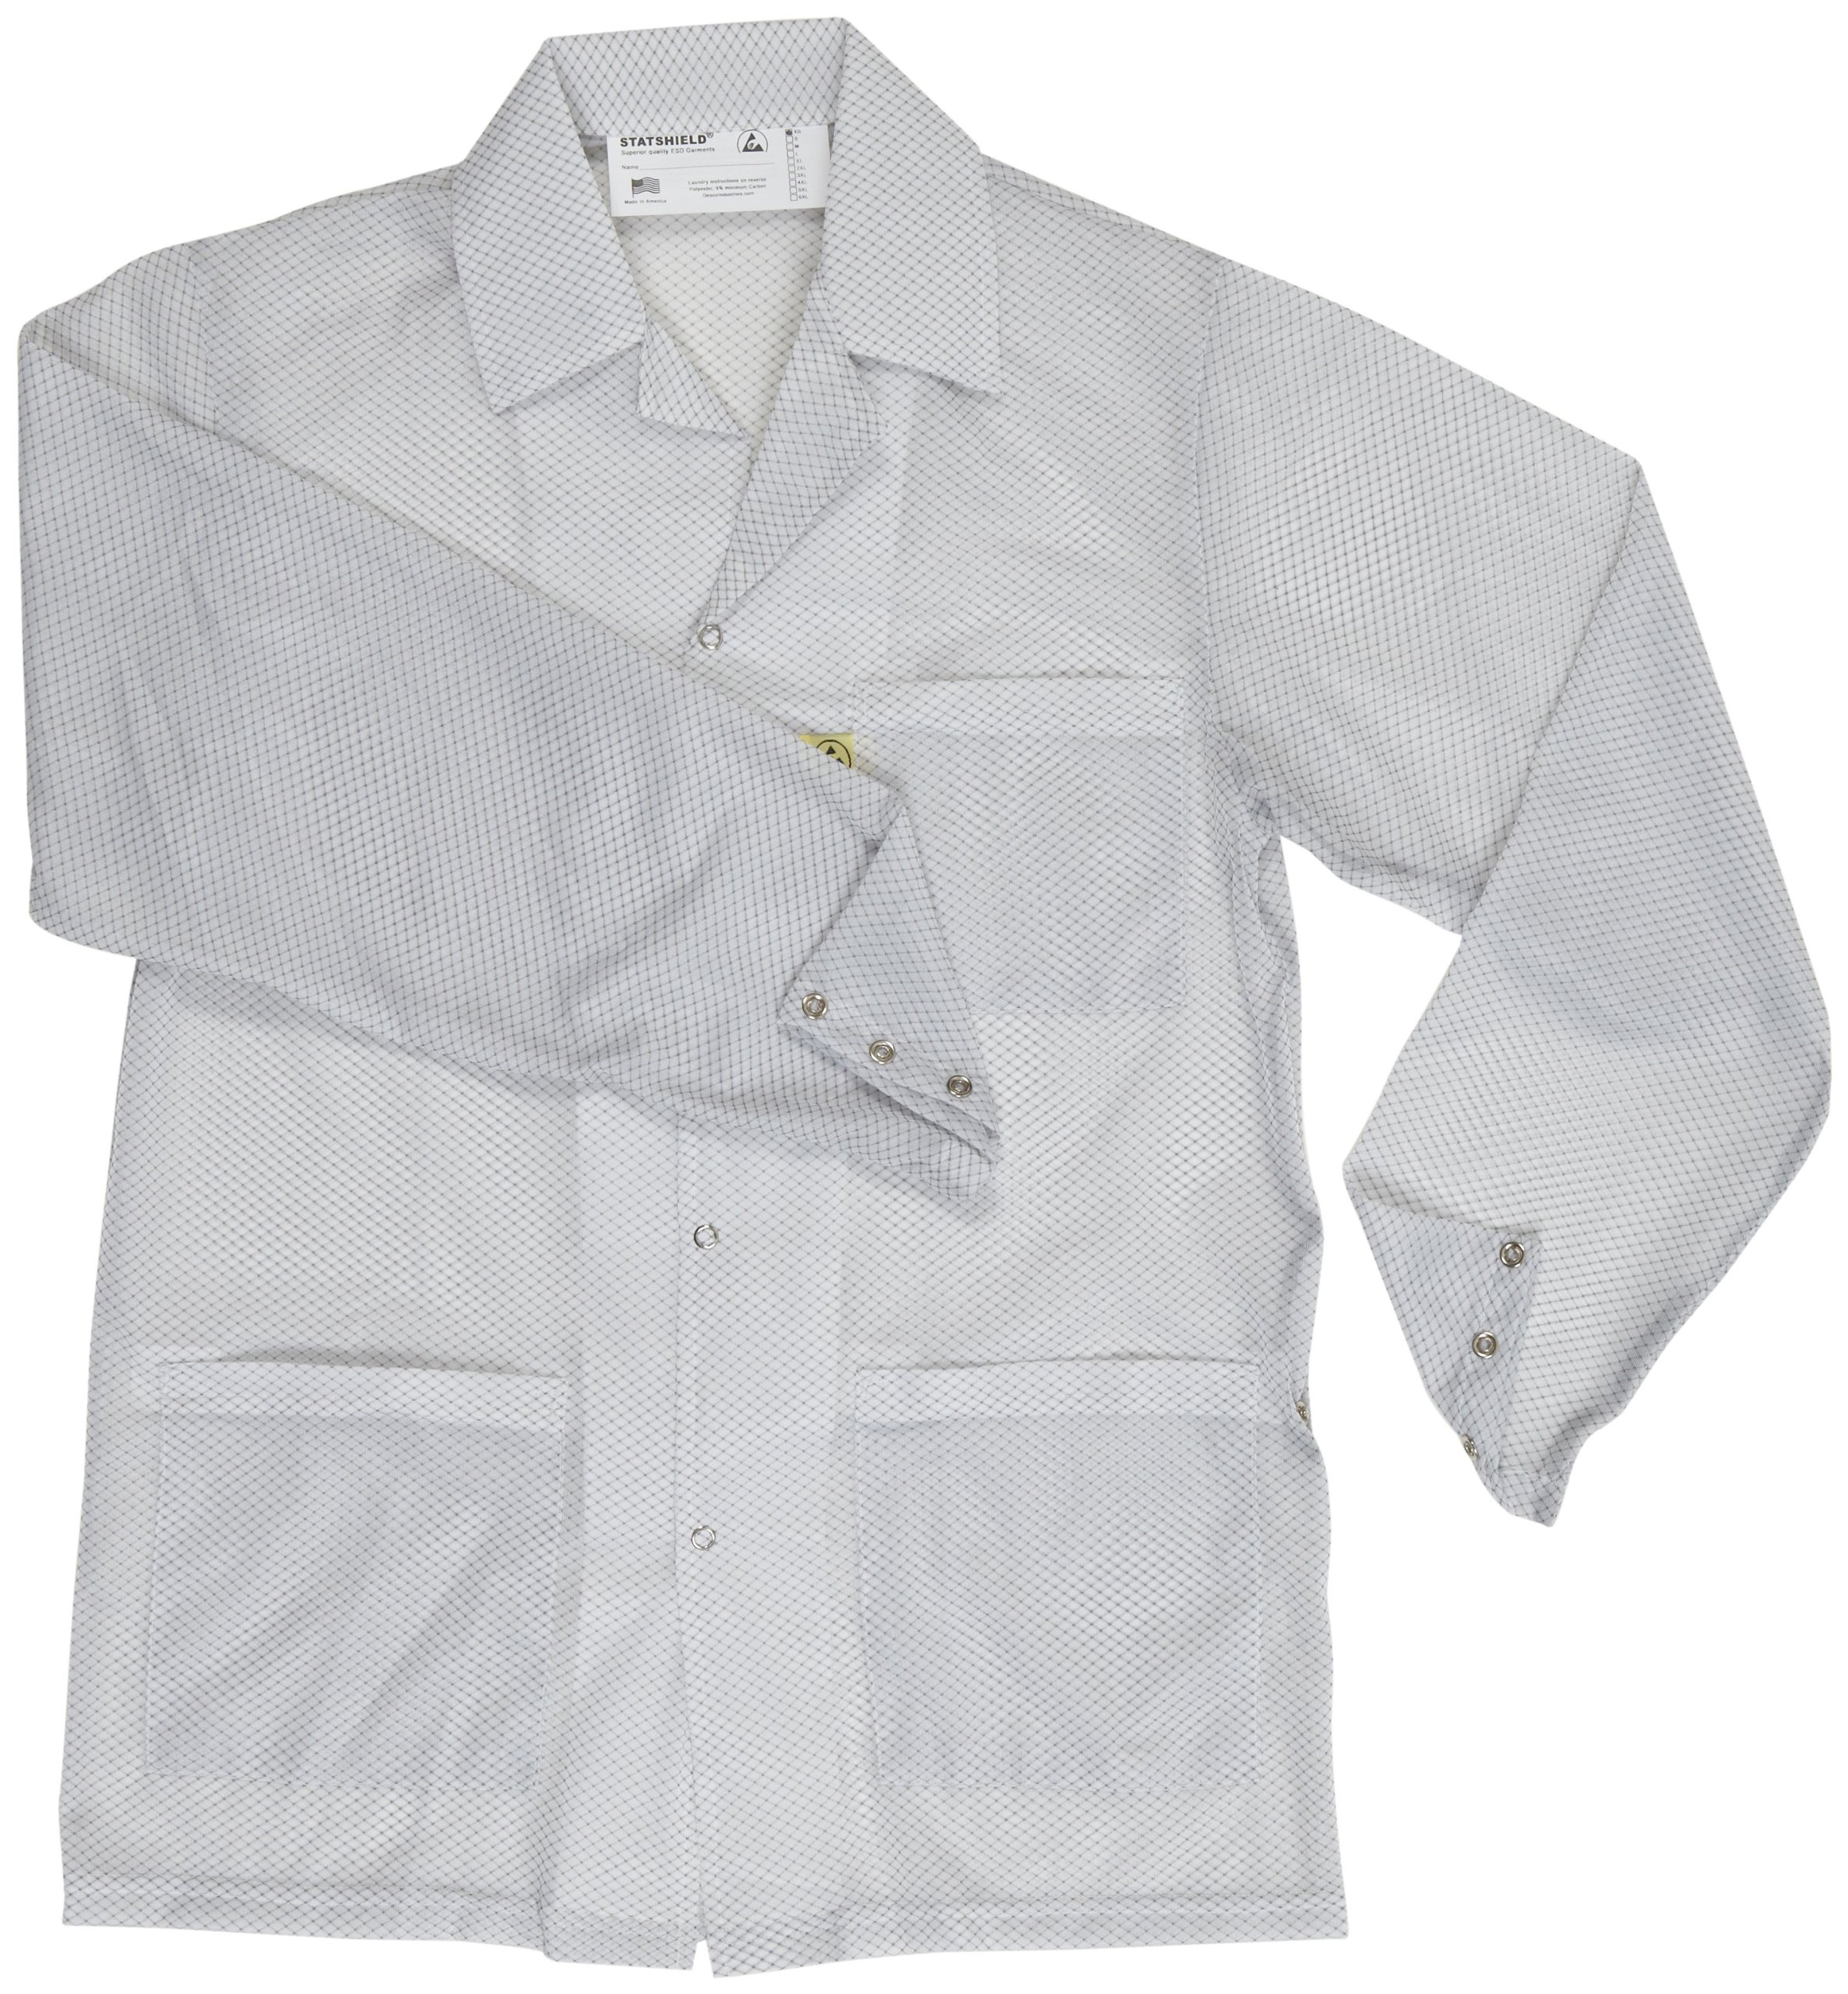 DESCO 73626 Polyester Smock Statshield Labcoat with Snaps, 41'' Length, 3X-Large, White